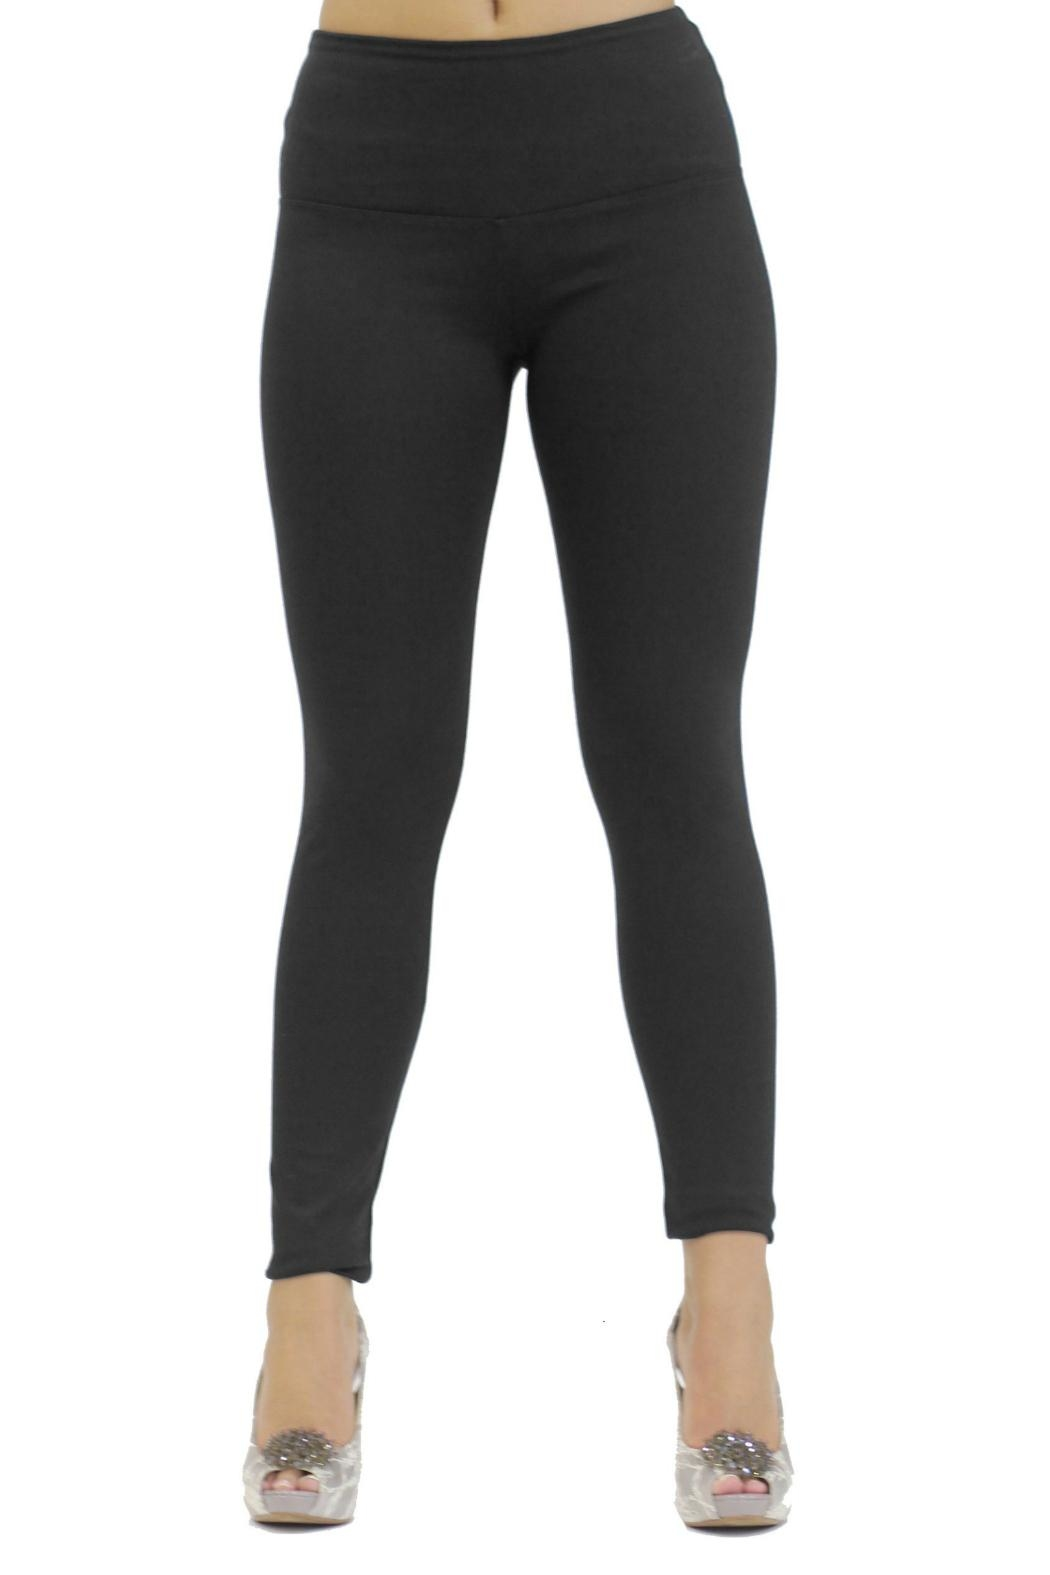 Alisha D Alish'd Jillian Legging - Main Image